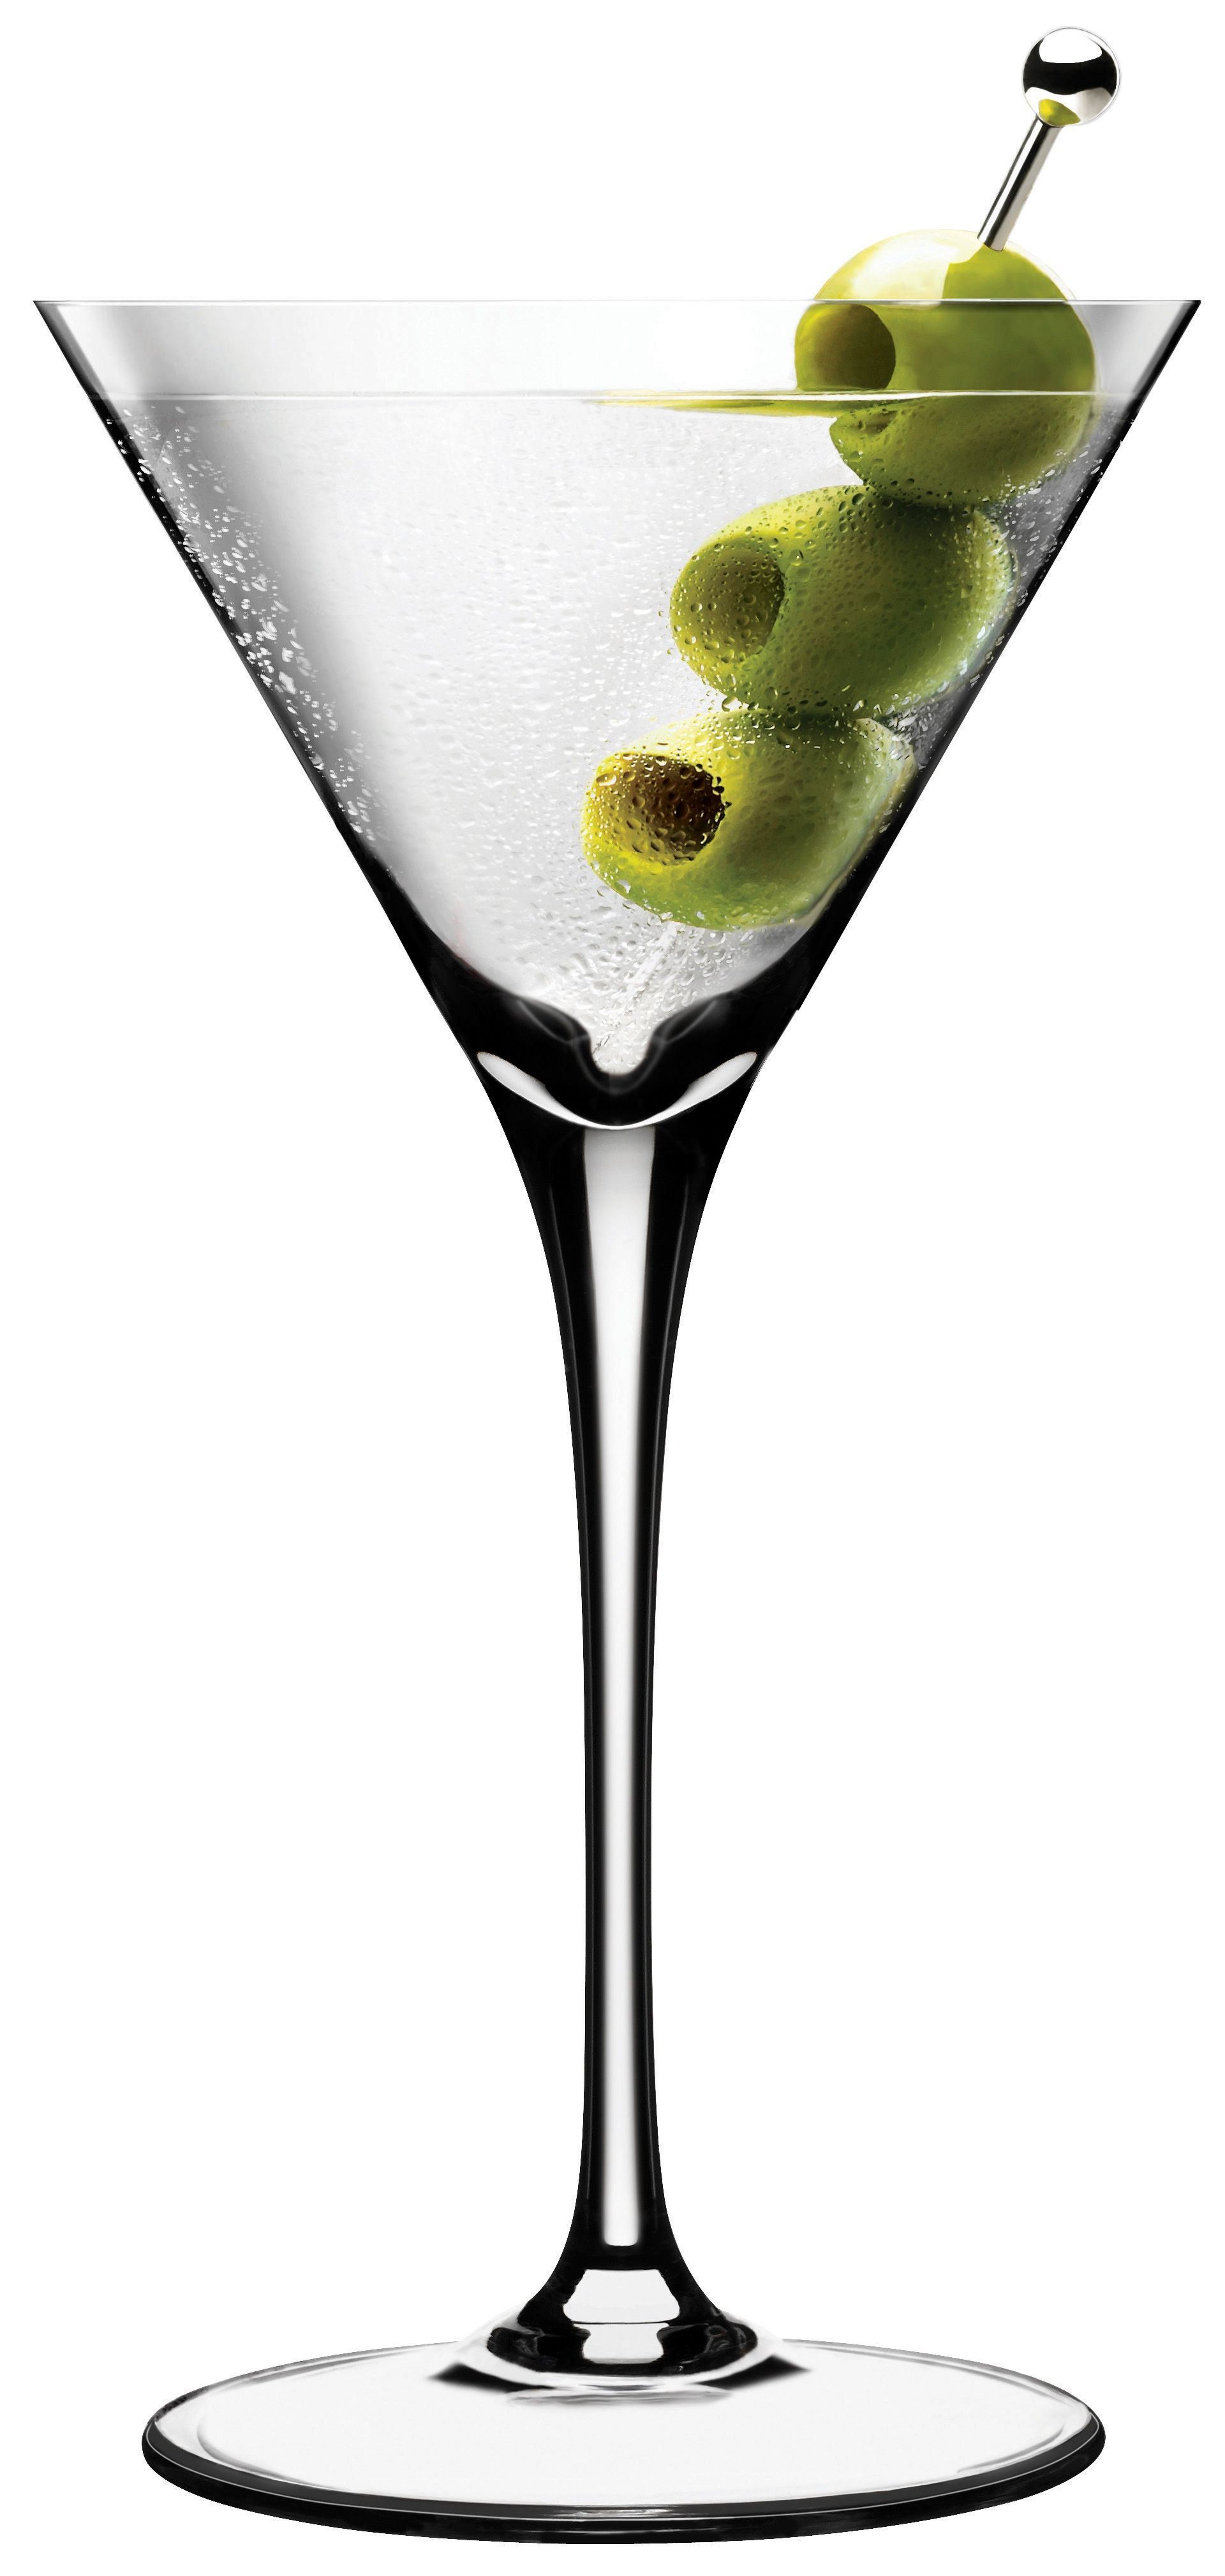 How to drink dry martini